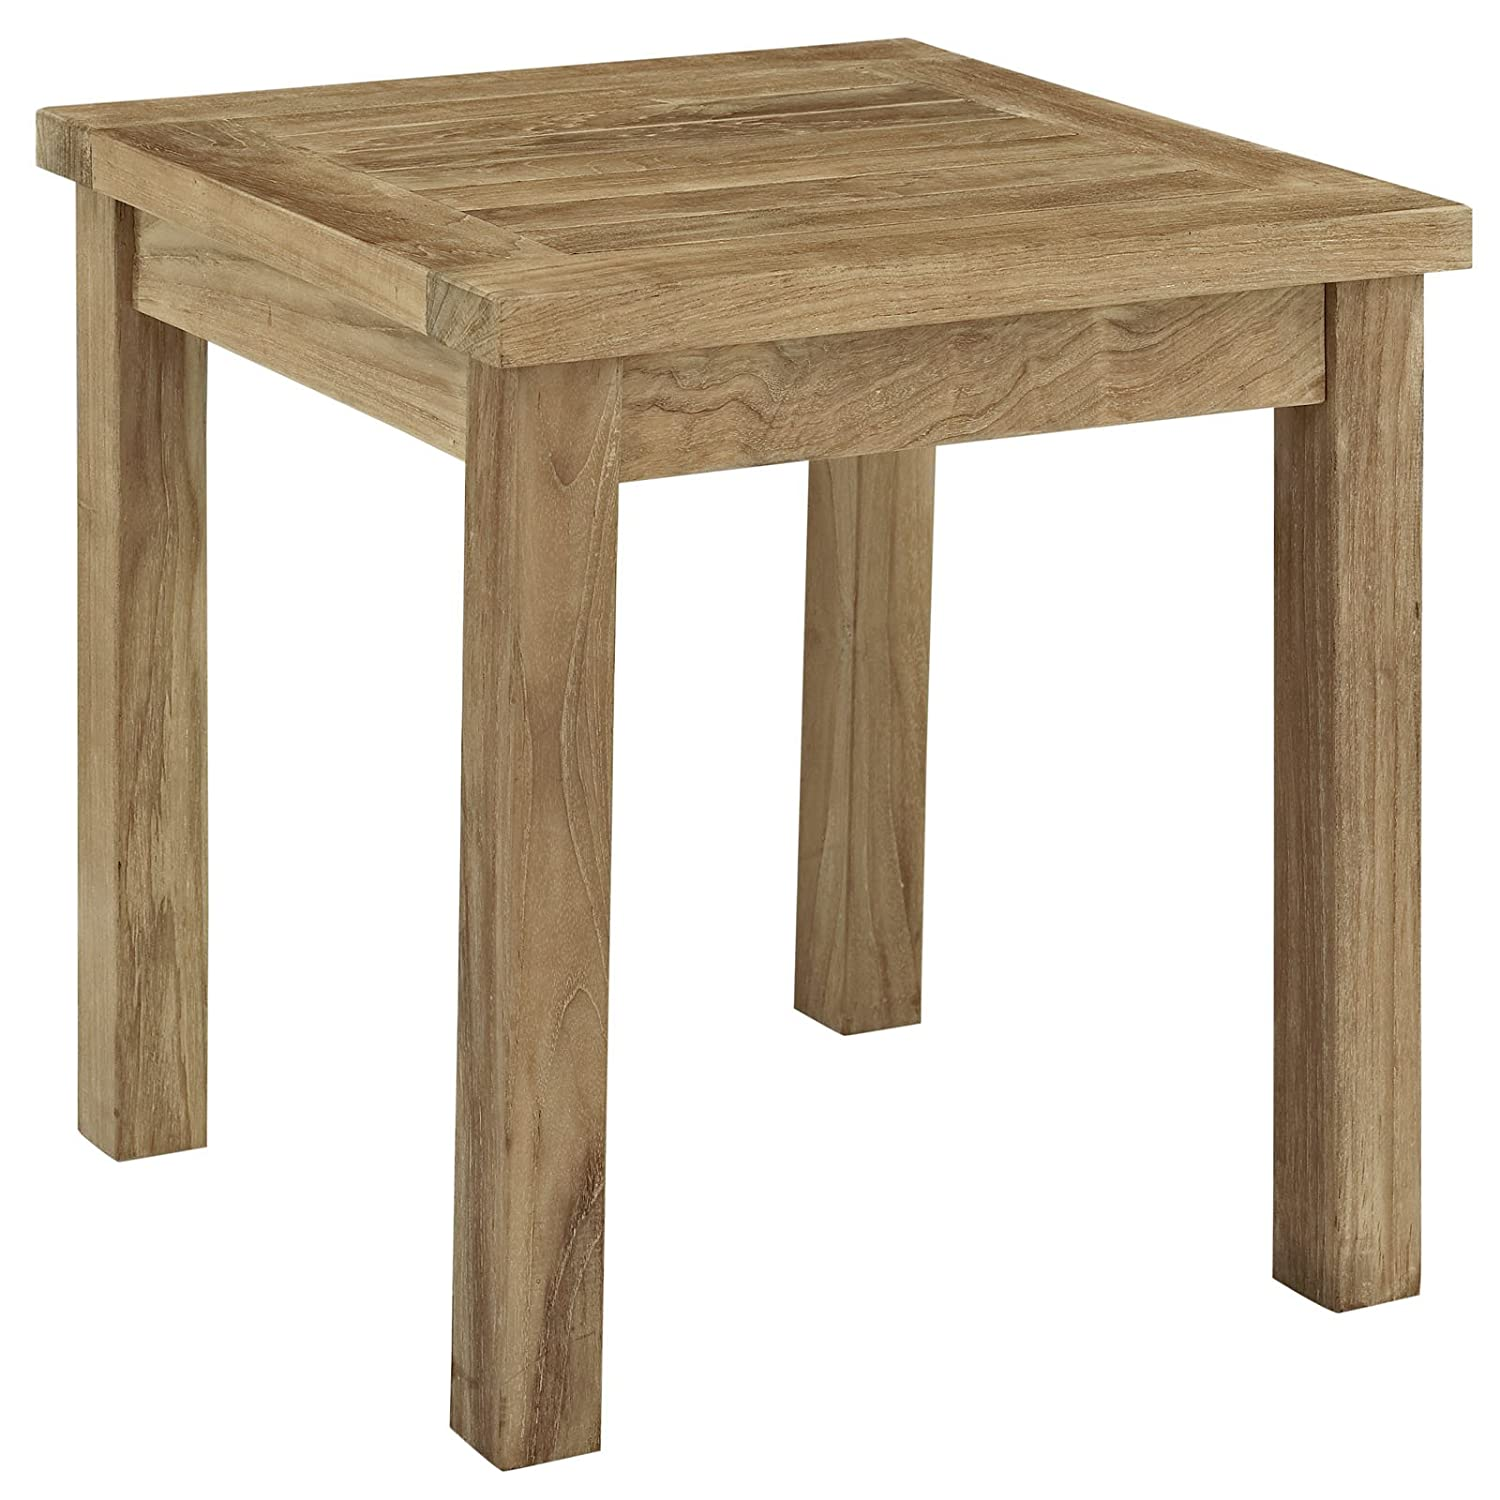 Captivating Amazon.com: Modway Marina Teak Wood Outdoor Patio Side Table In Natural:  Kitchen U0026 Dining